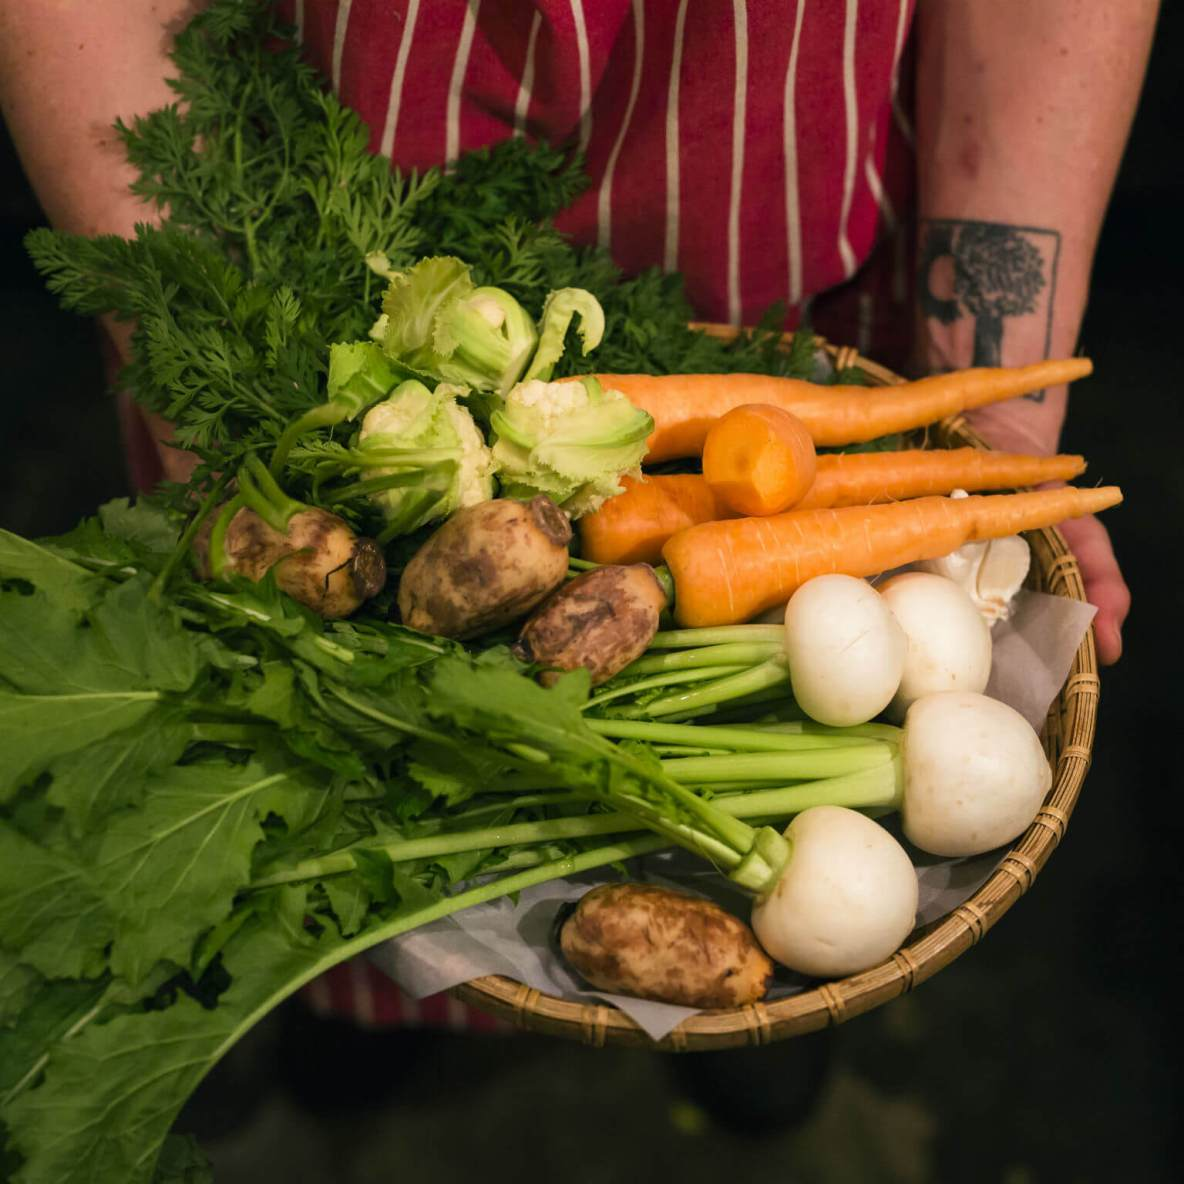 Vegetable-centric restaurant that feels like the chef's home dining room